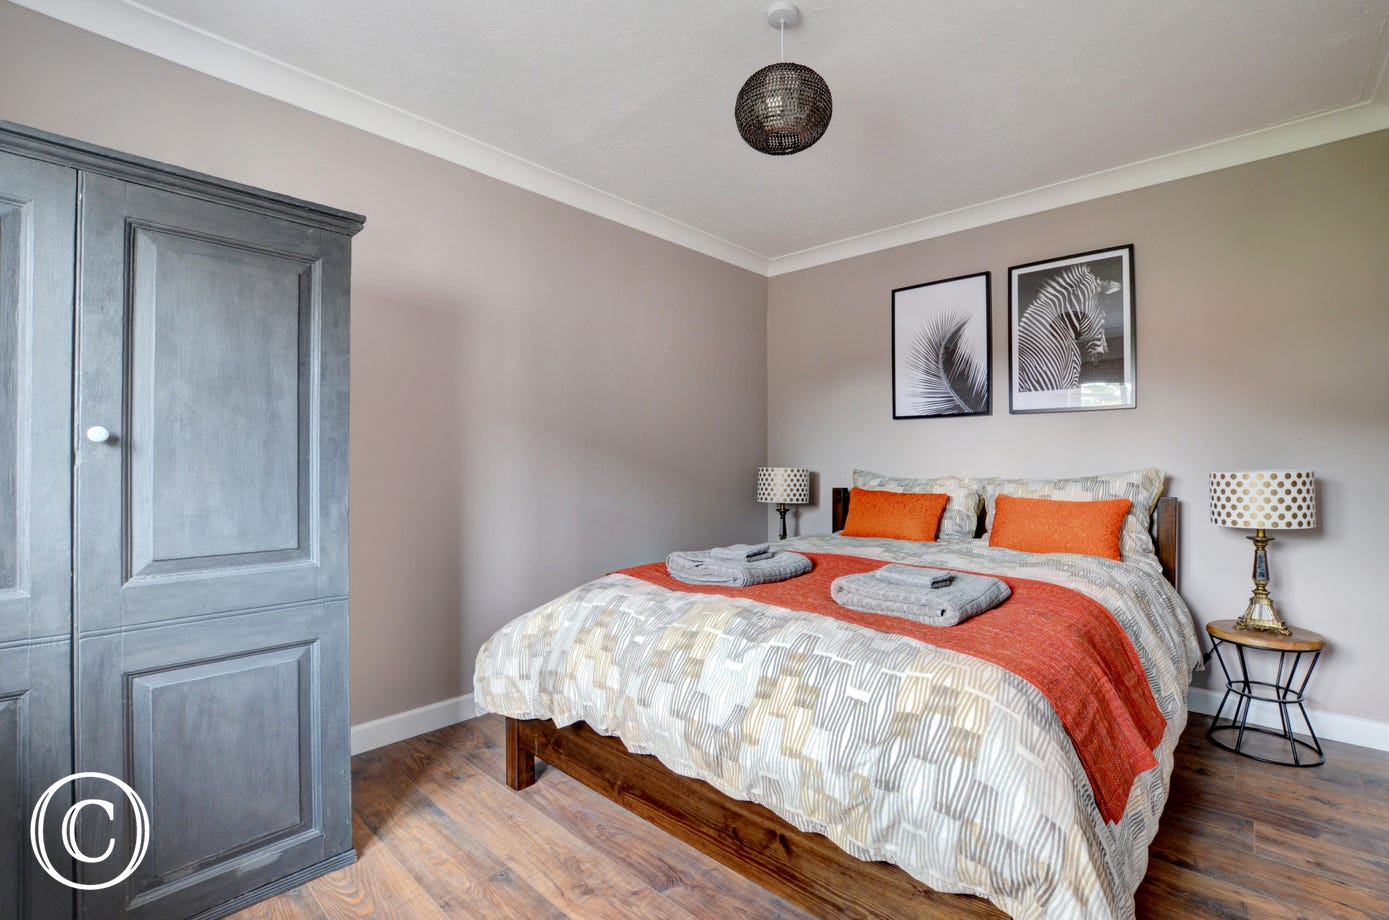 The double bedroom with kingsize bed has been beautiful decorated with stylish furnishings